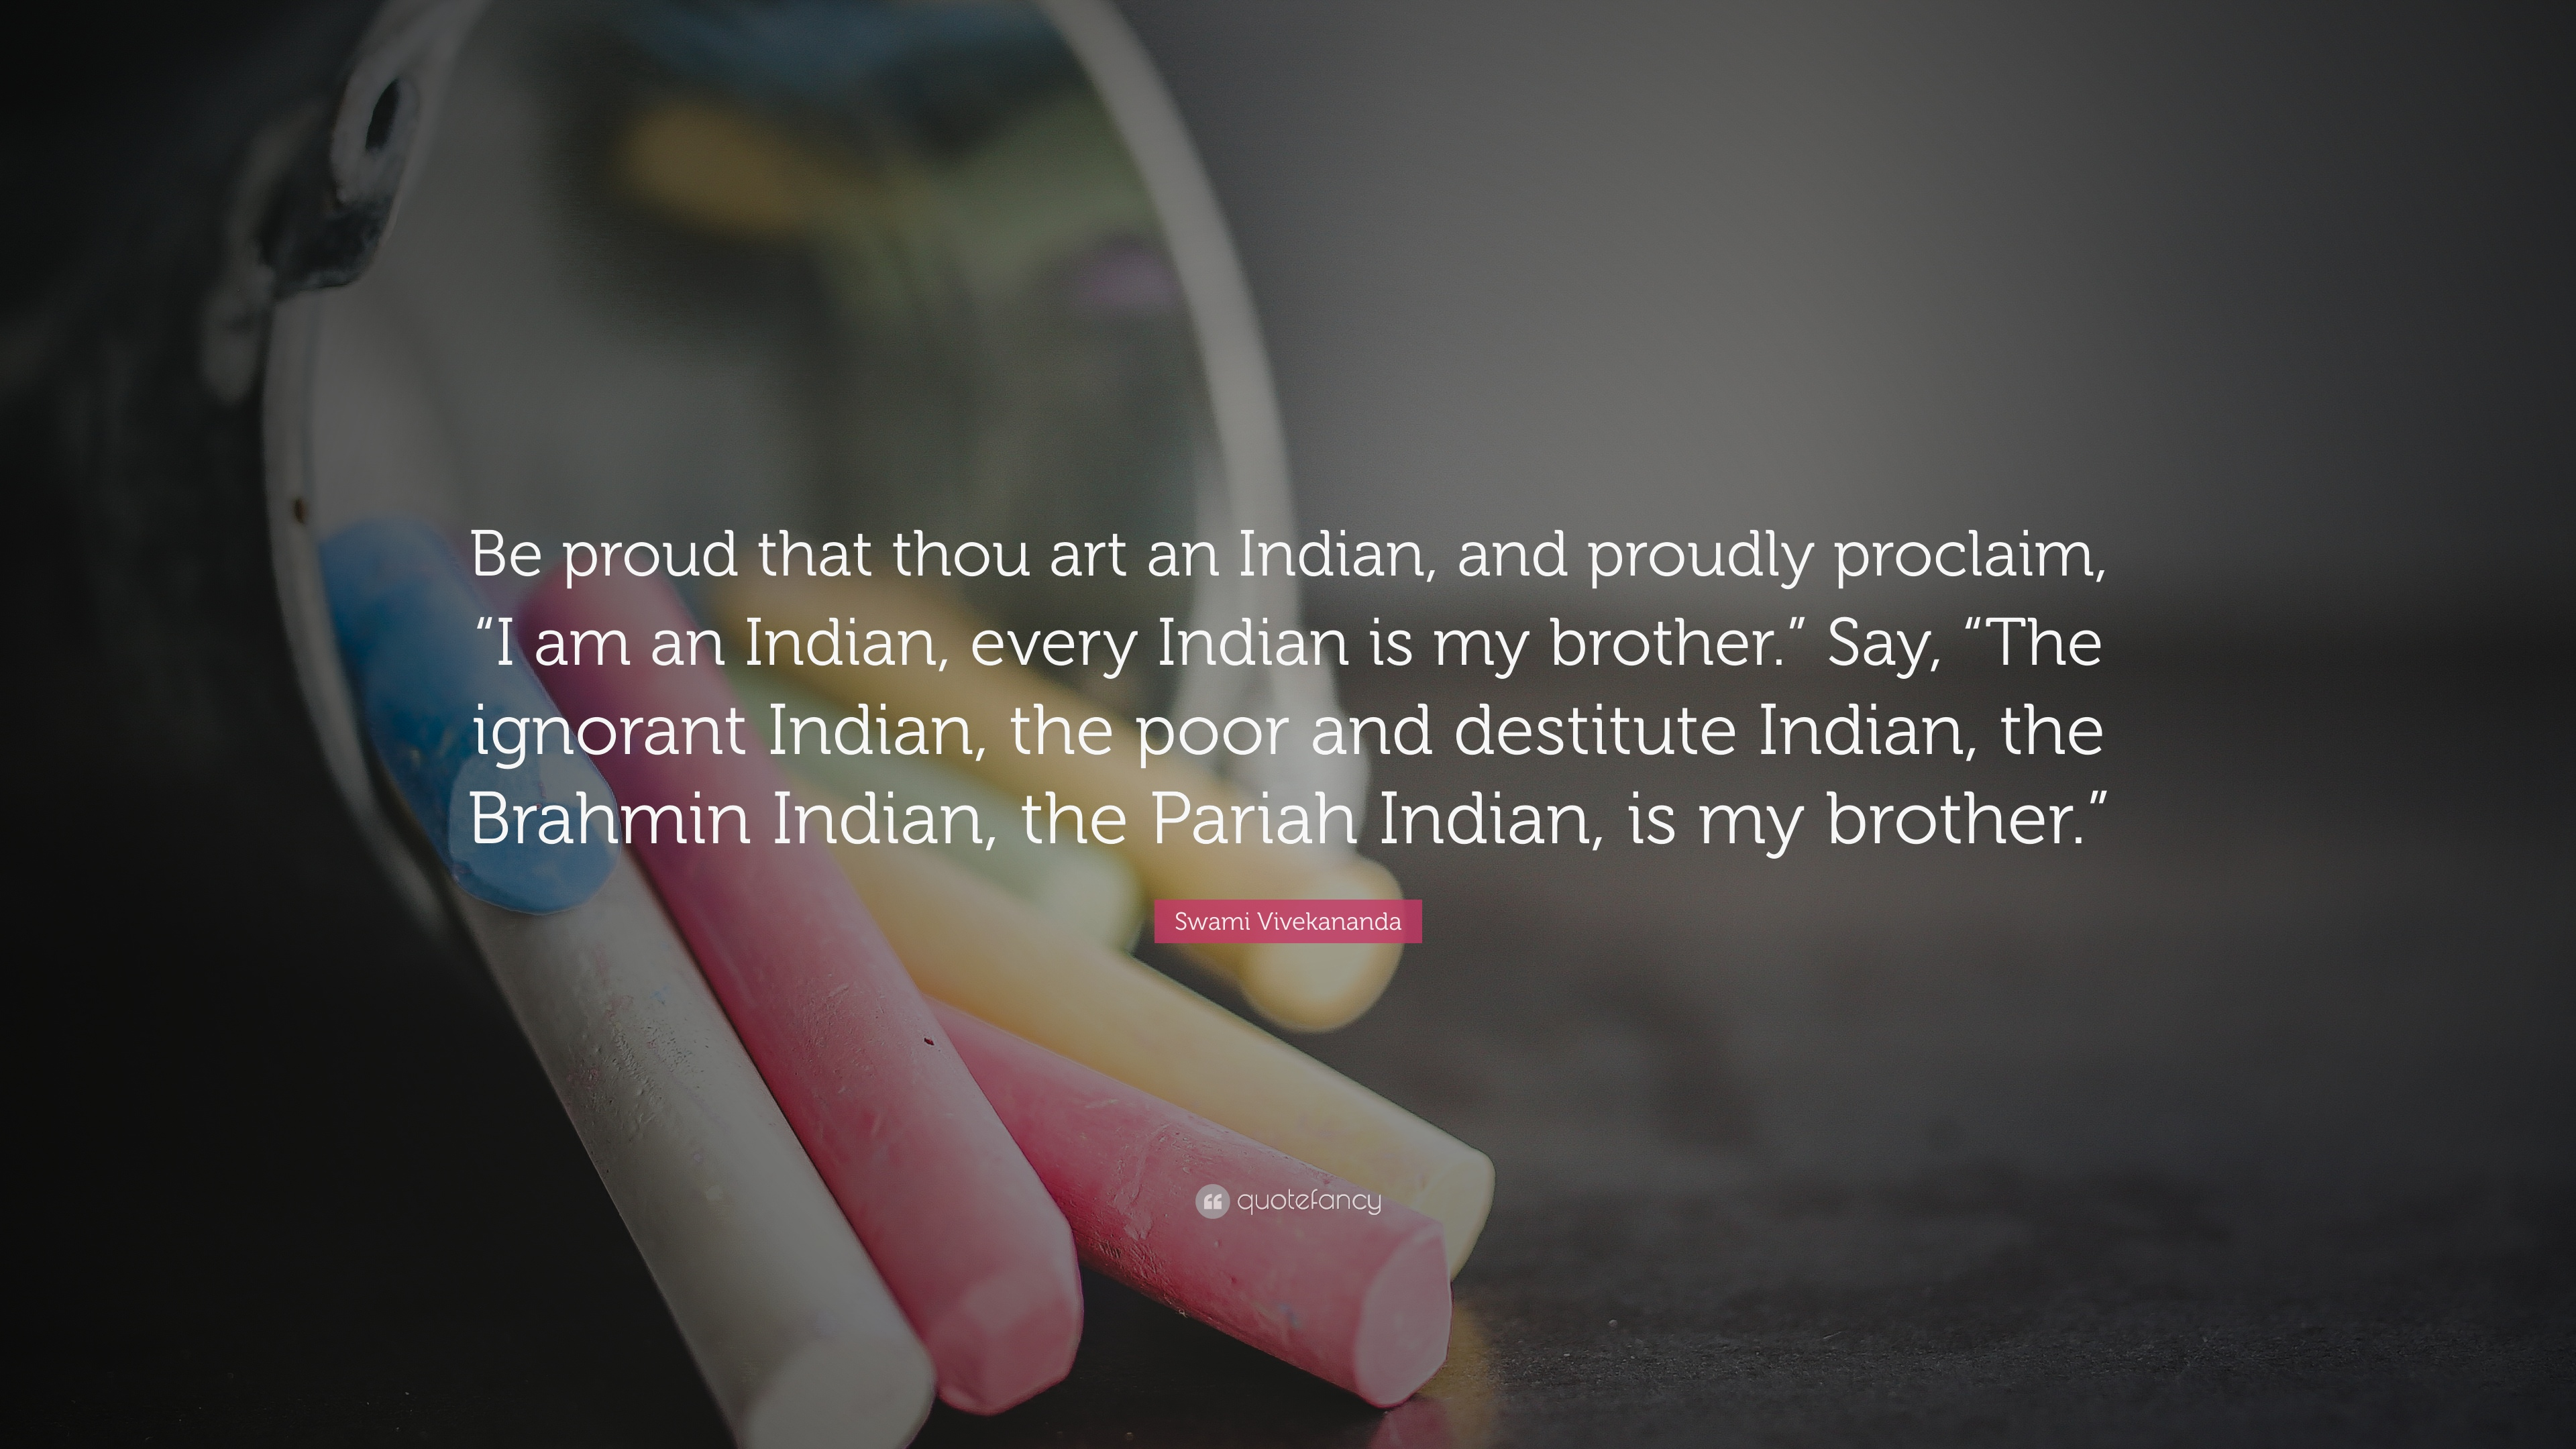 Swami Vivekananda Quotes (100 wallpapers) - Quotefancy I Am Proud To Be An Indian Wallpapers